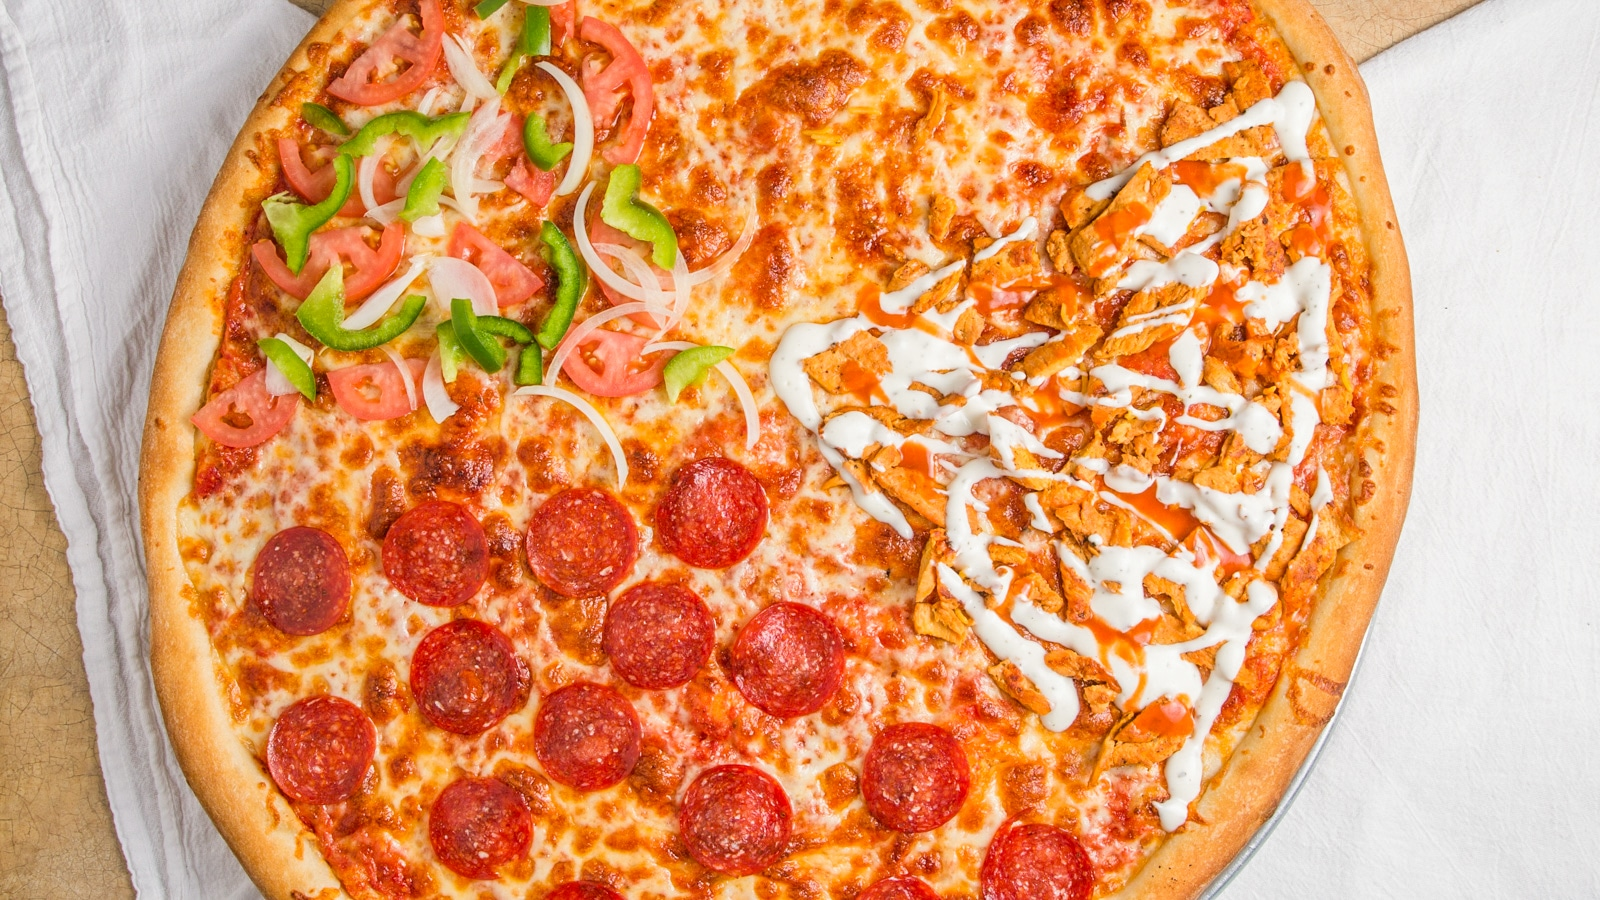 us fried chicken and pizza in linden nj